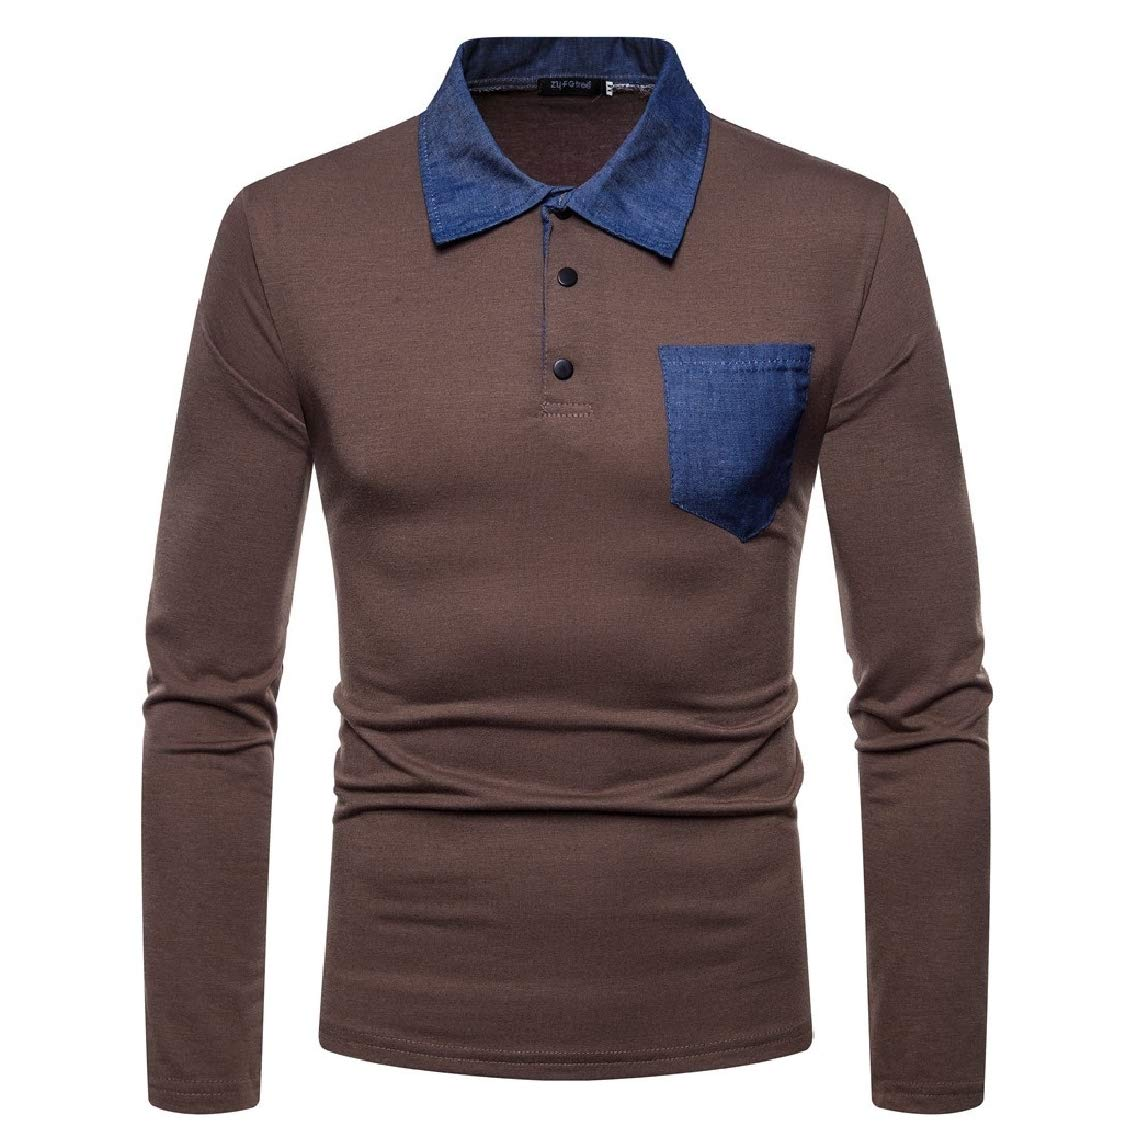 Freely Mens Causal Stitch Lapel Long-Sleeve Autumn Polo Shirts Tees Top